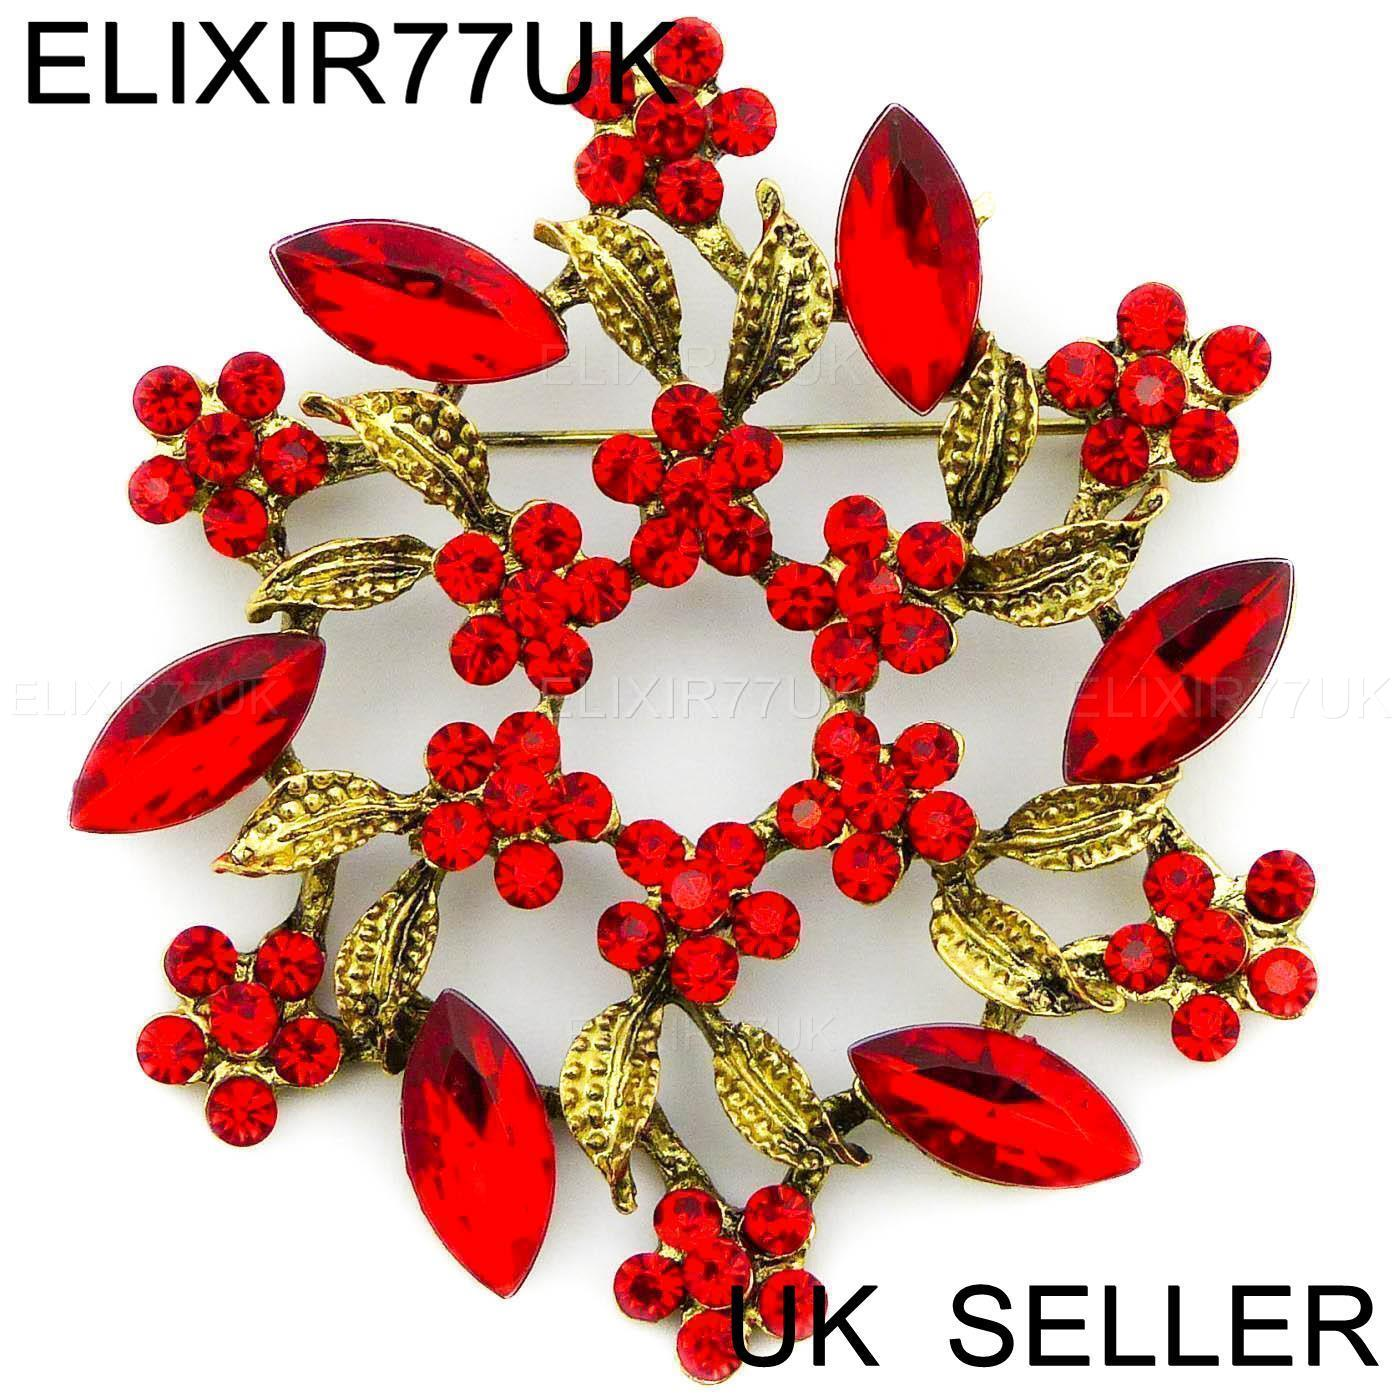 d996f1a80313a LARGE RED DIAMANTE CRYSTAL VINTAGE FLOWER BROOCH PIN BOUQUET ANTIQUE ...